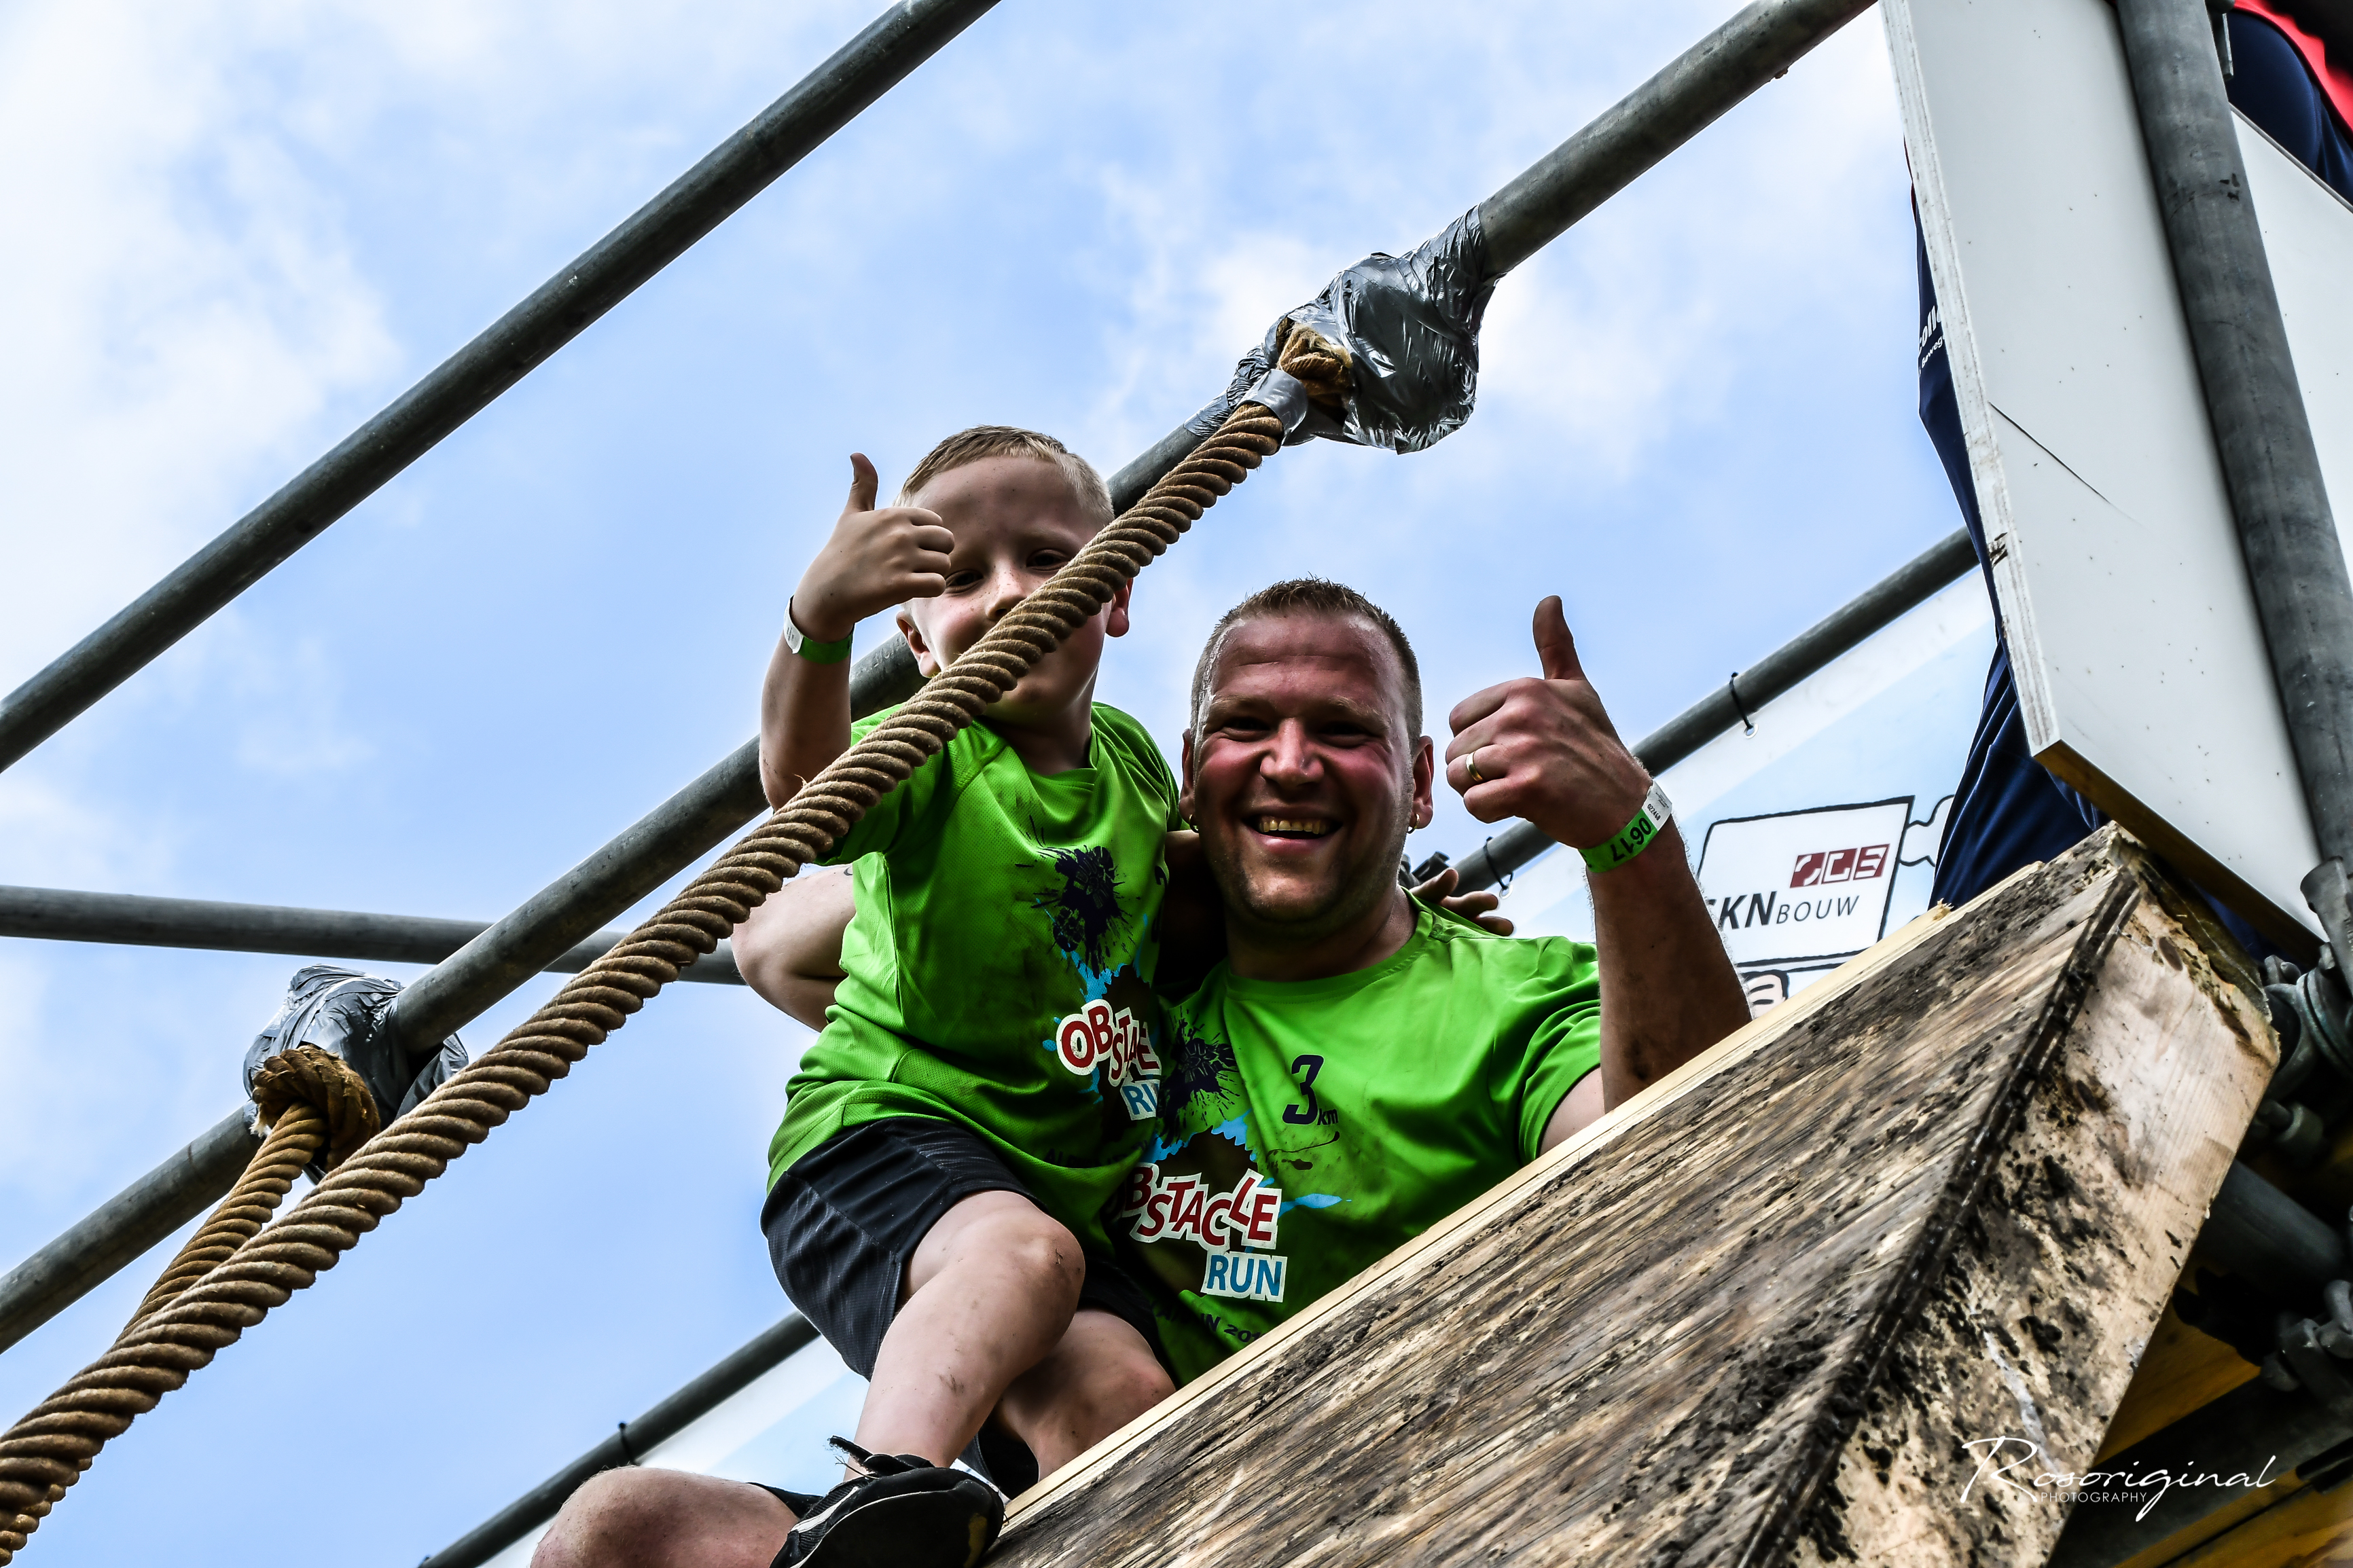 Zaterdag 9 Februari Start Verkoop Tickets Obstacle Run